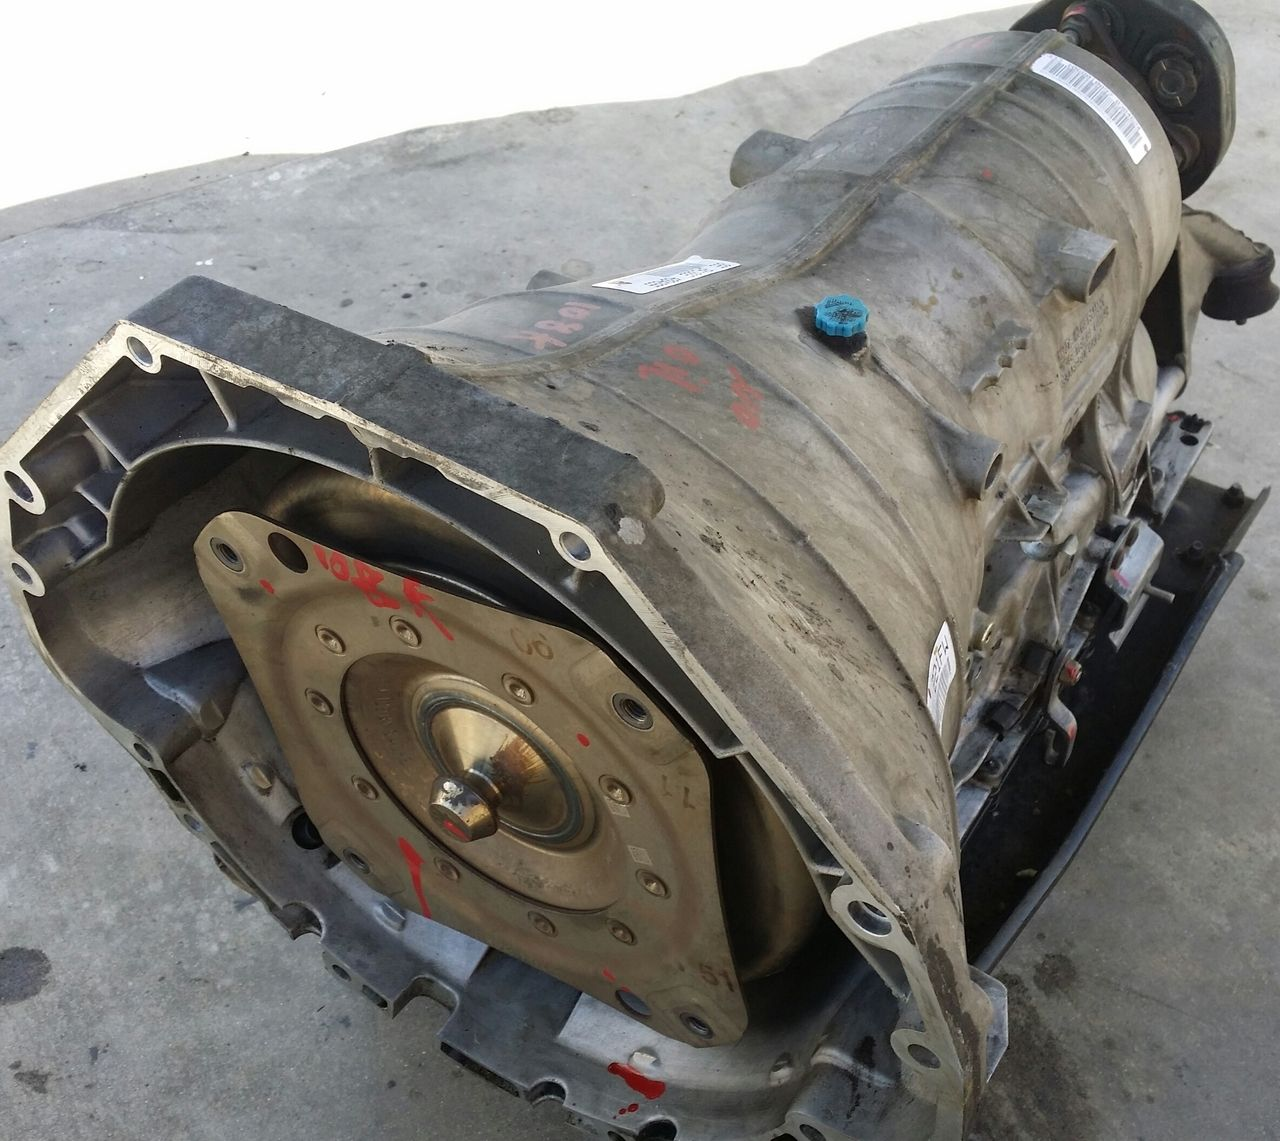 Bmw 745i used transmission 2004 see at http www automotix net usedtransmissions 2004 bmw 745i inventory html fit_notes 1b27f45877aef85cff092a9b6f3f8c5d